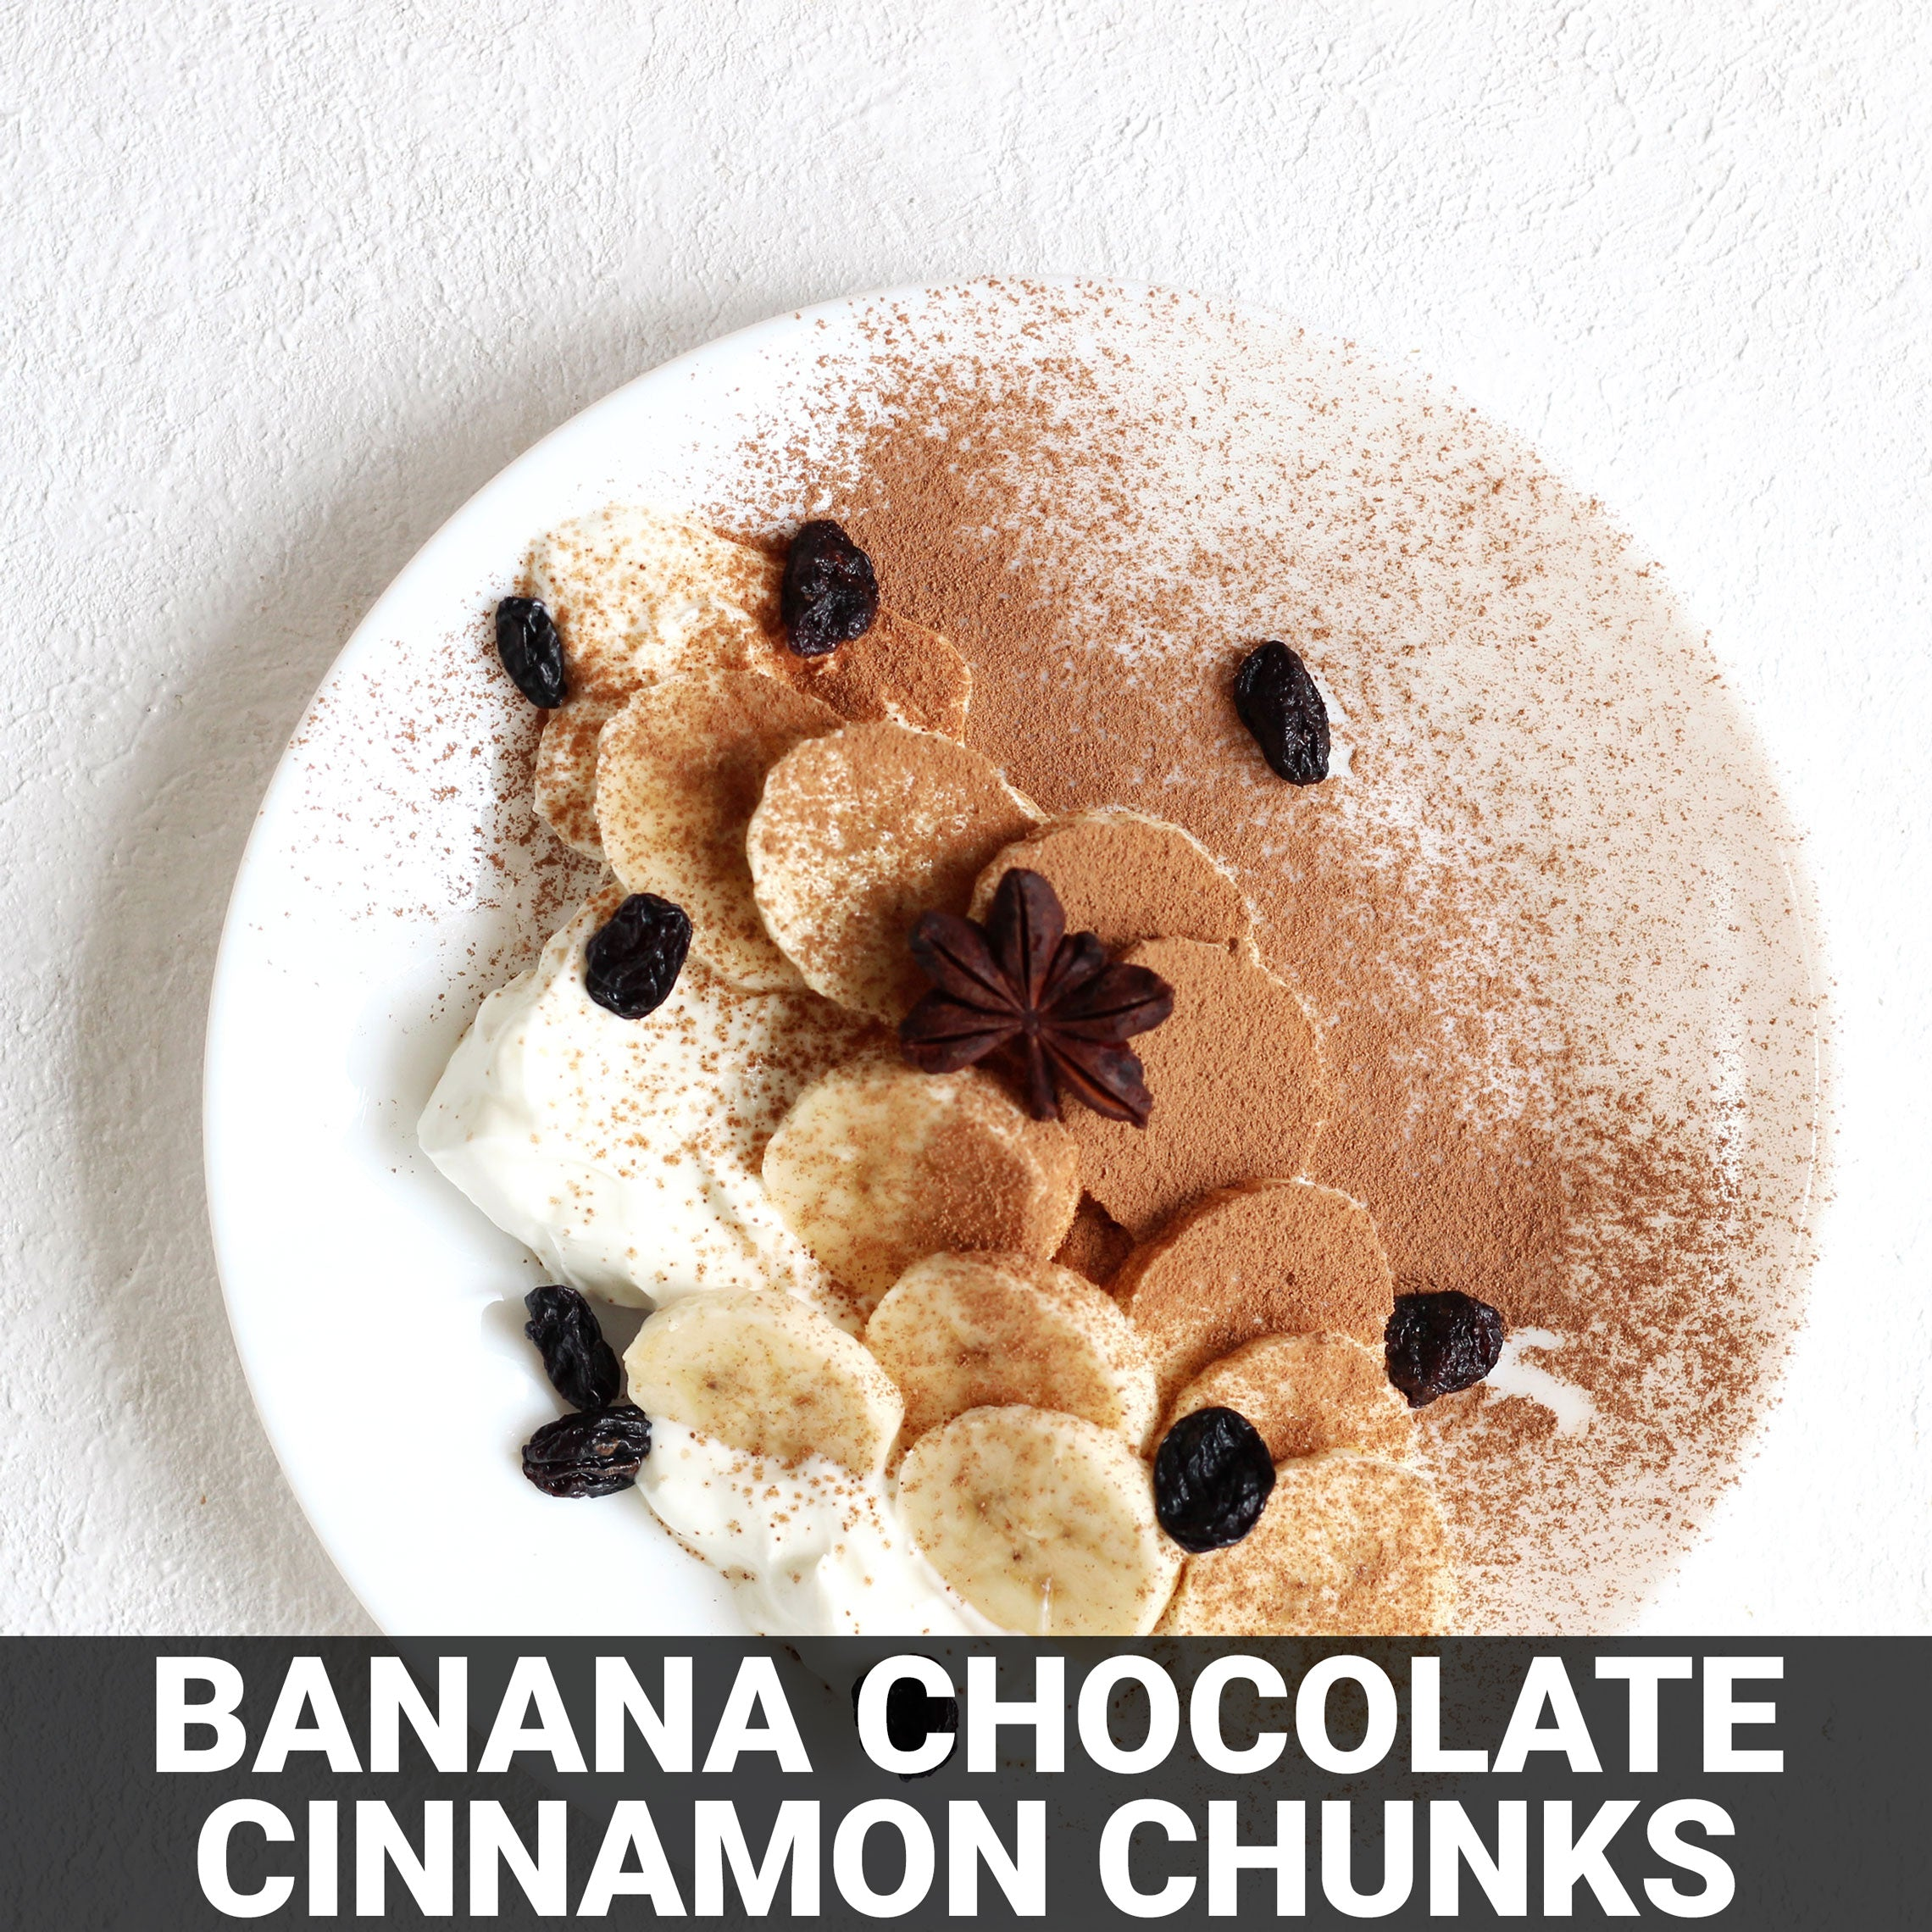 Banana Chocolate/Cinnamon Chunks Recipe - Foods Alive